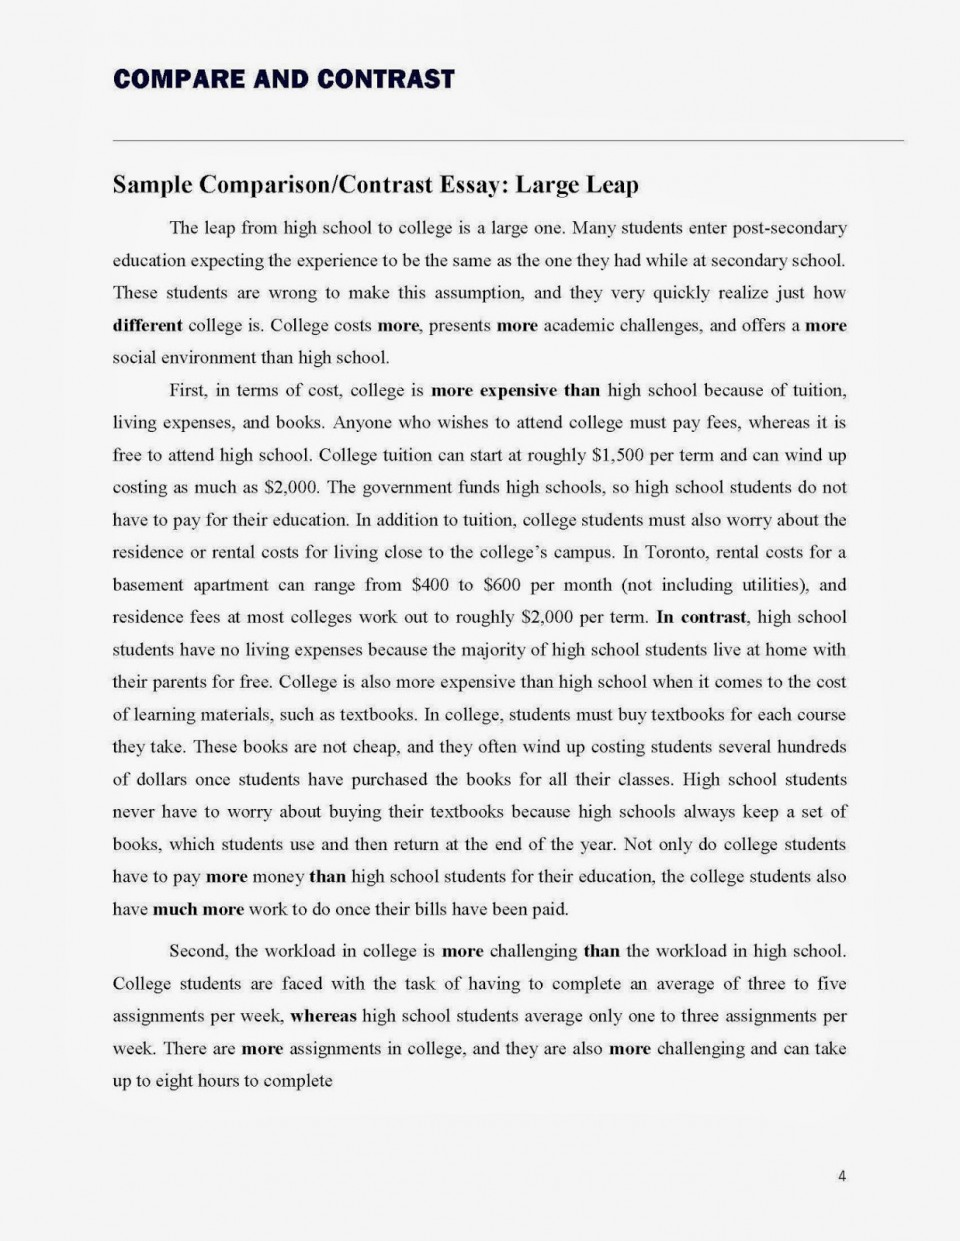 011 Compare And Contrast Essay Compareandcontrastessay Page 4h125 Frightening Sample 4th Grade Introduction Paragraph Ideas 960